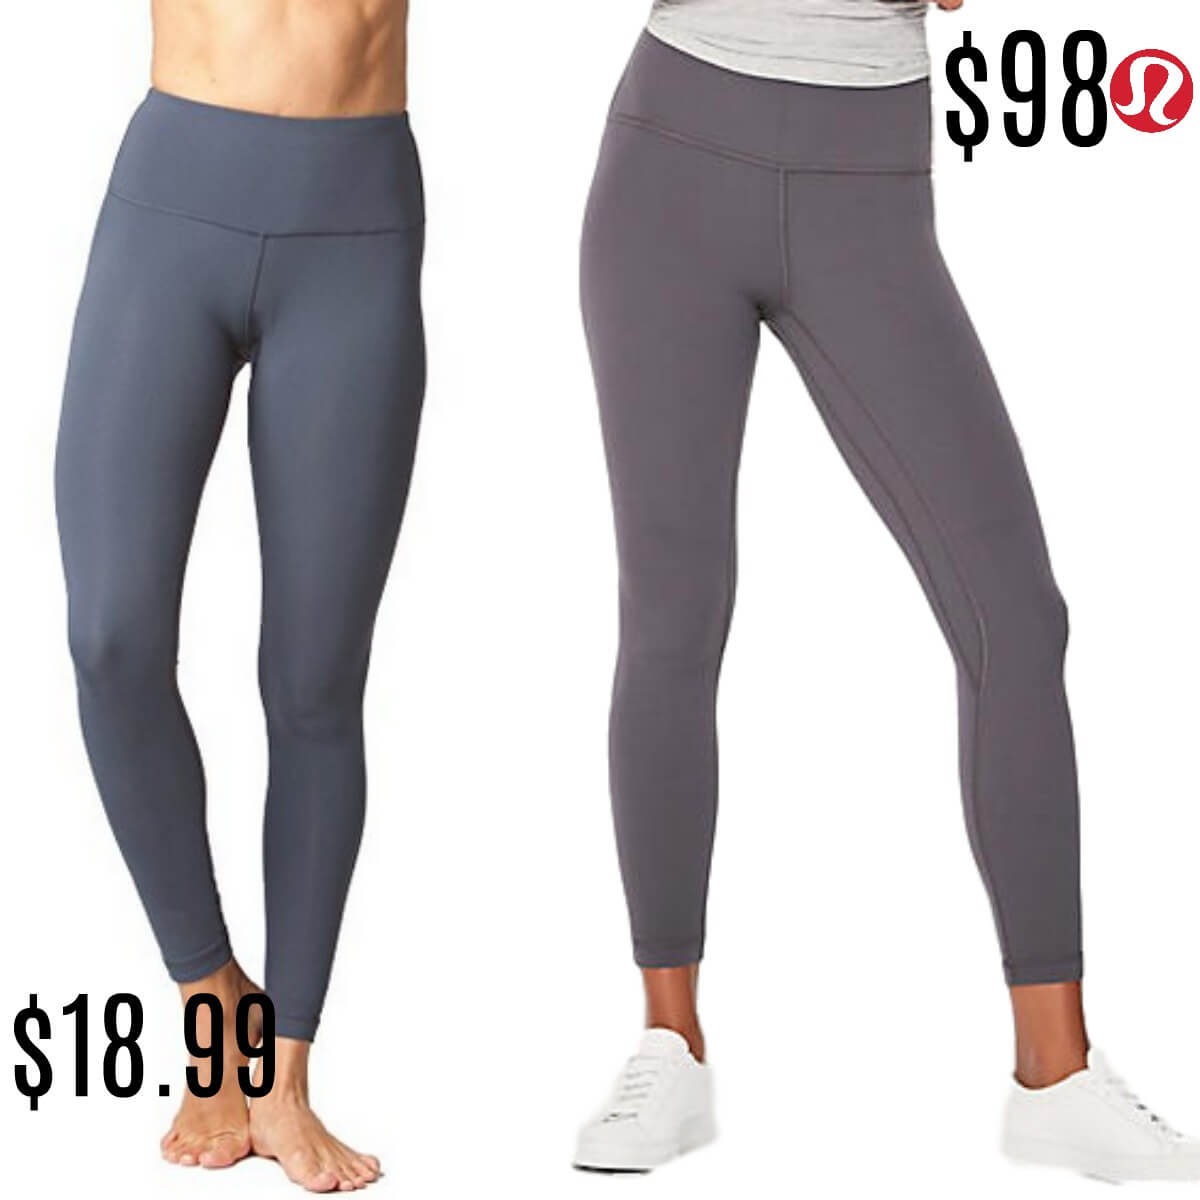 c66b4521af LuluLemon Dupes That Will Shock You, They Are That GoodLiving Rich ...